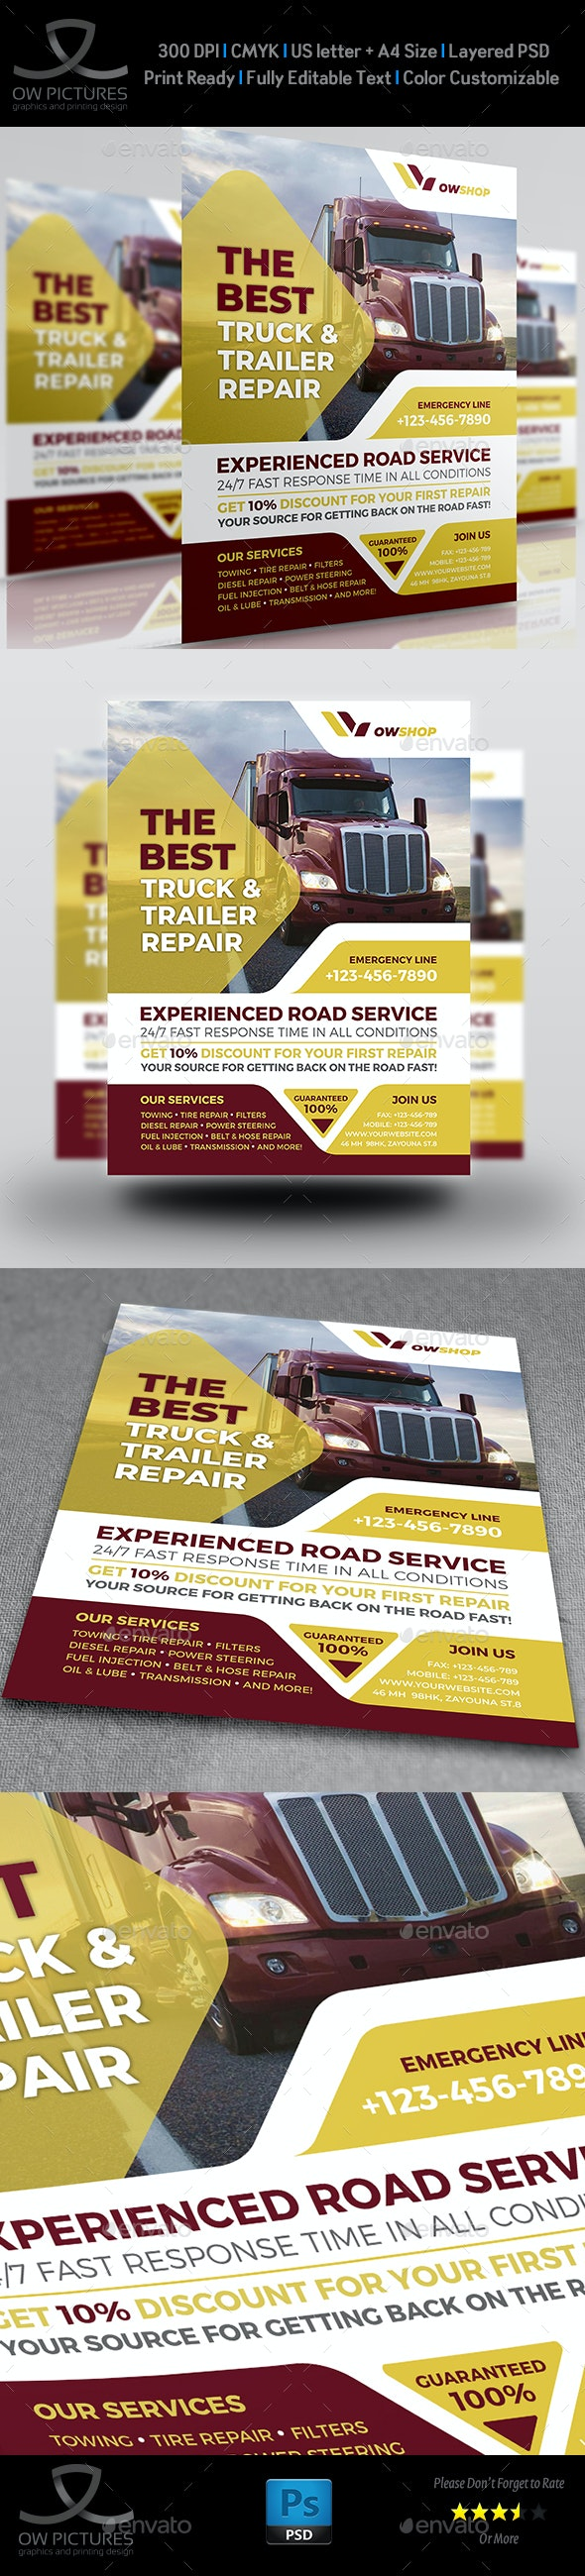 Truck and Trailer Repair Services Flyer Template - Corporate Flyers